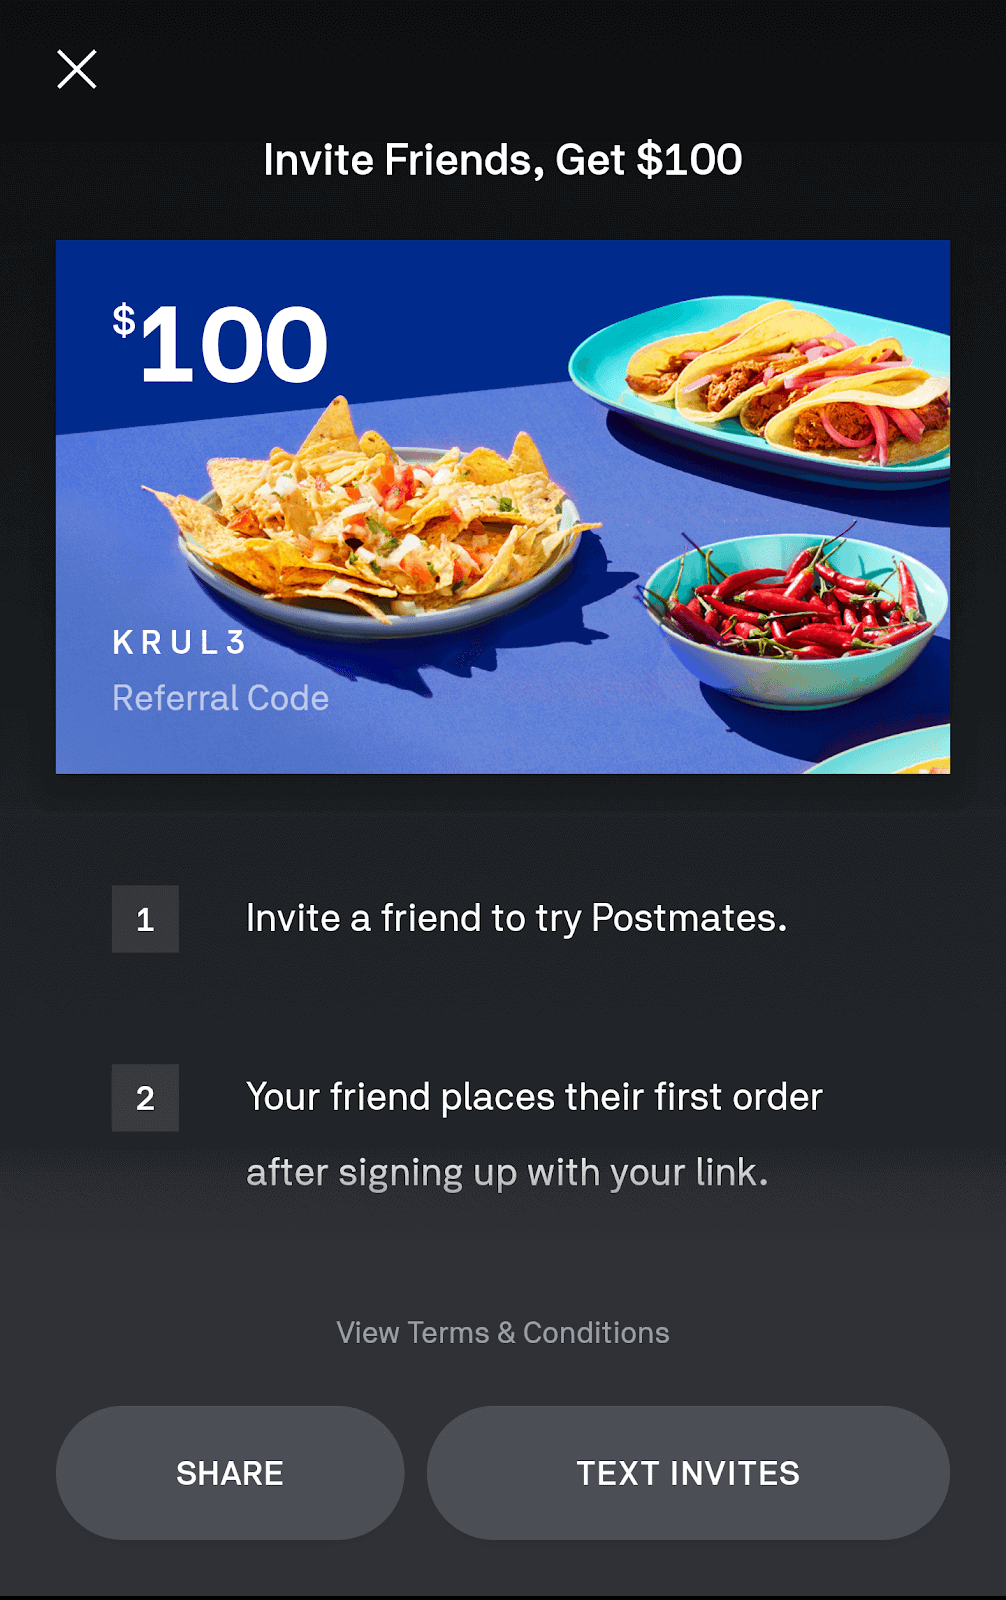 Invite friends to Postmates with your promo code